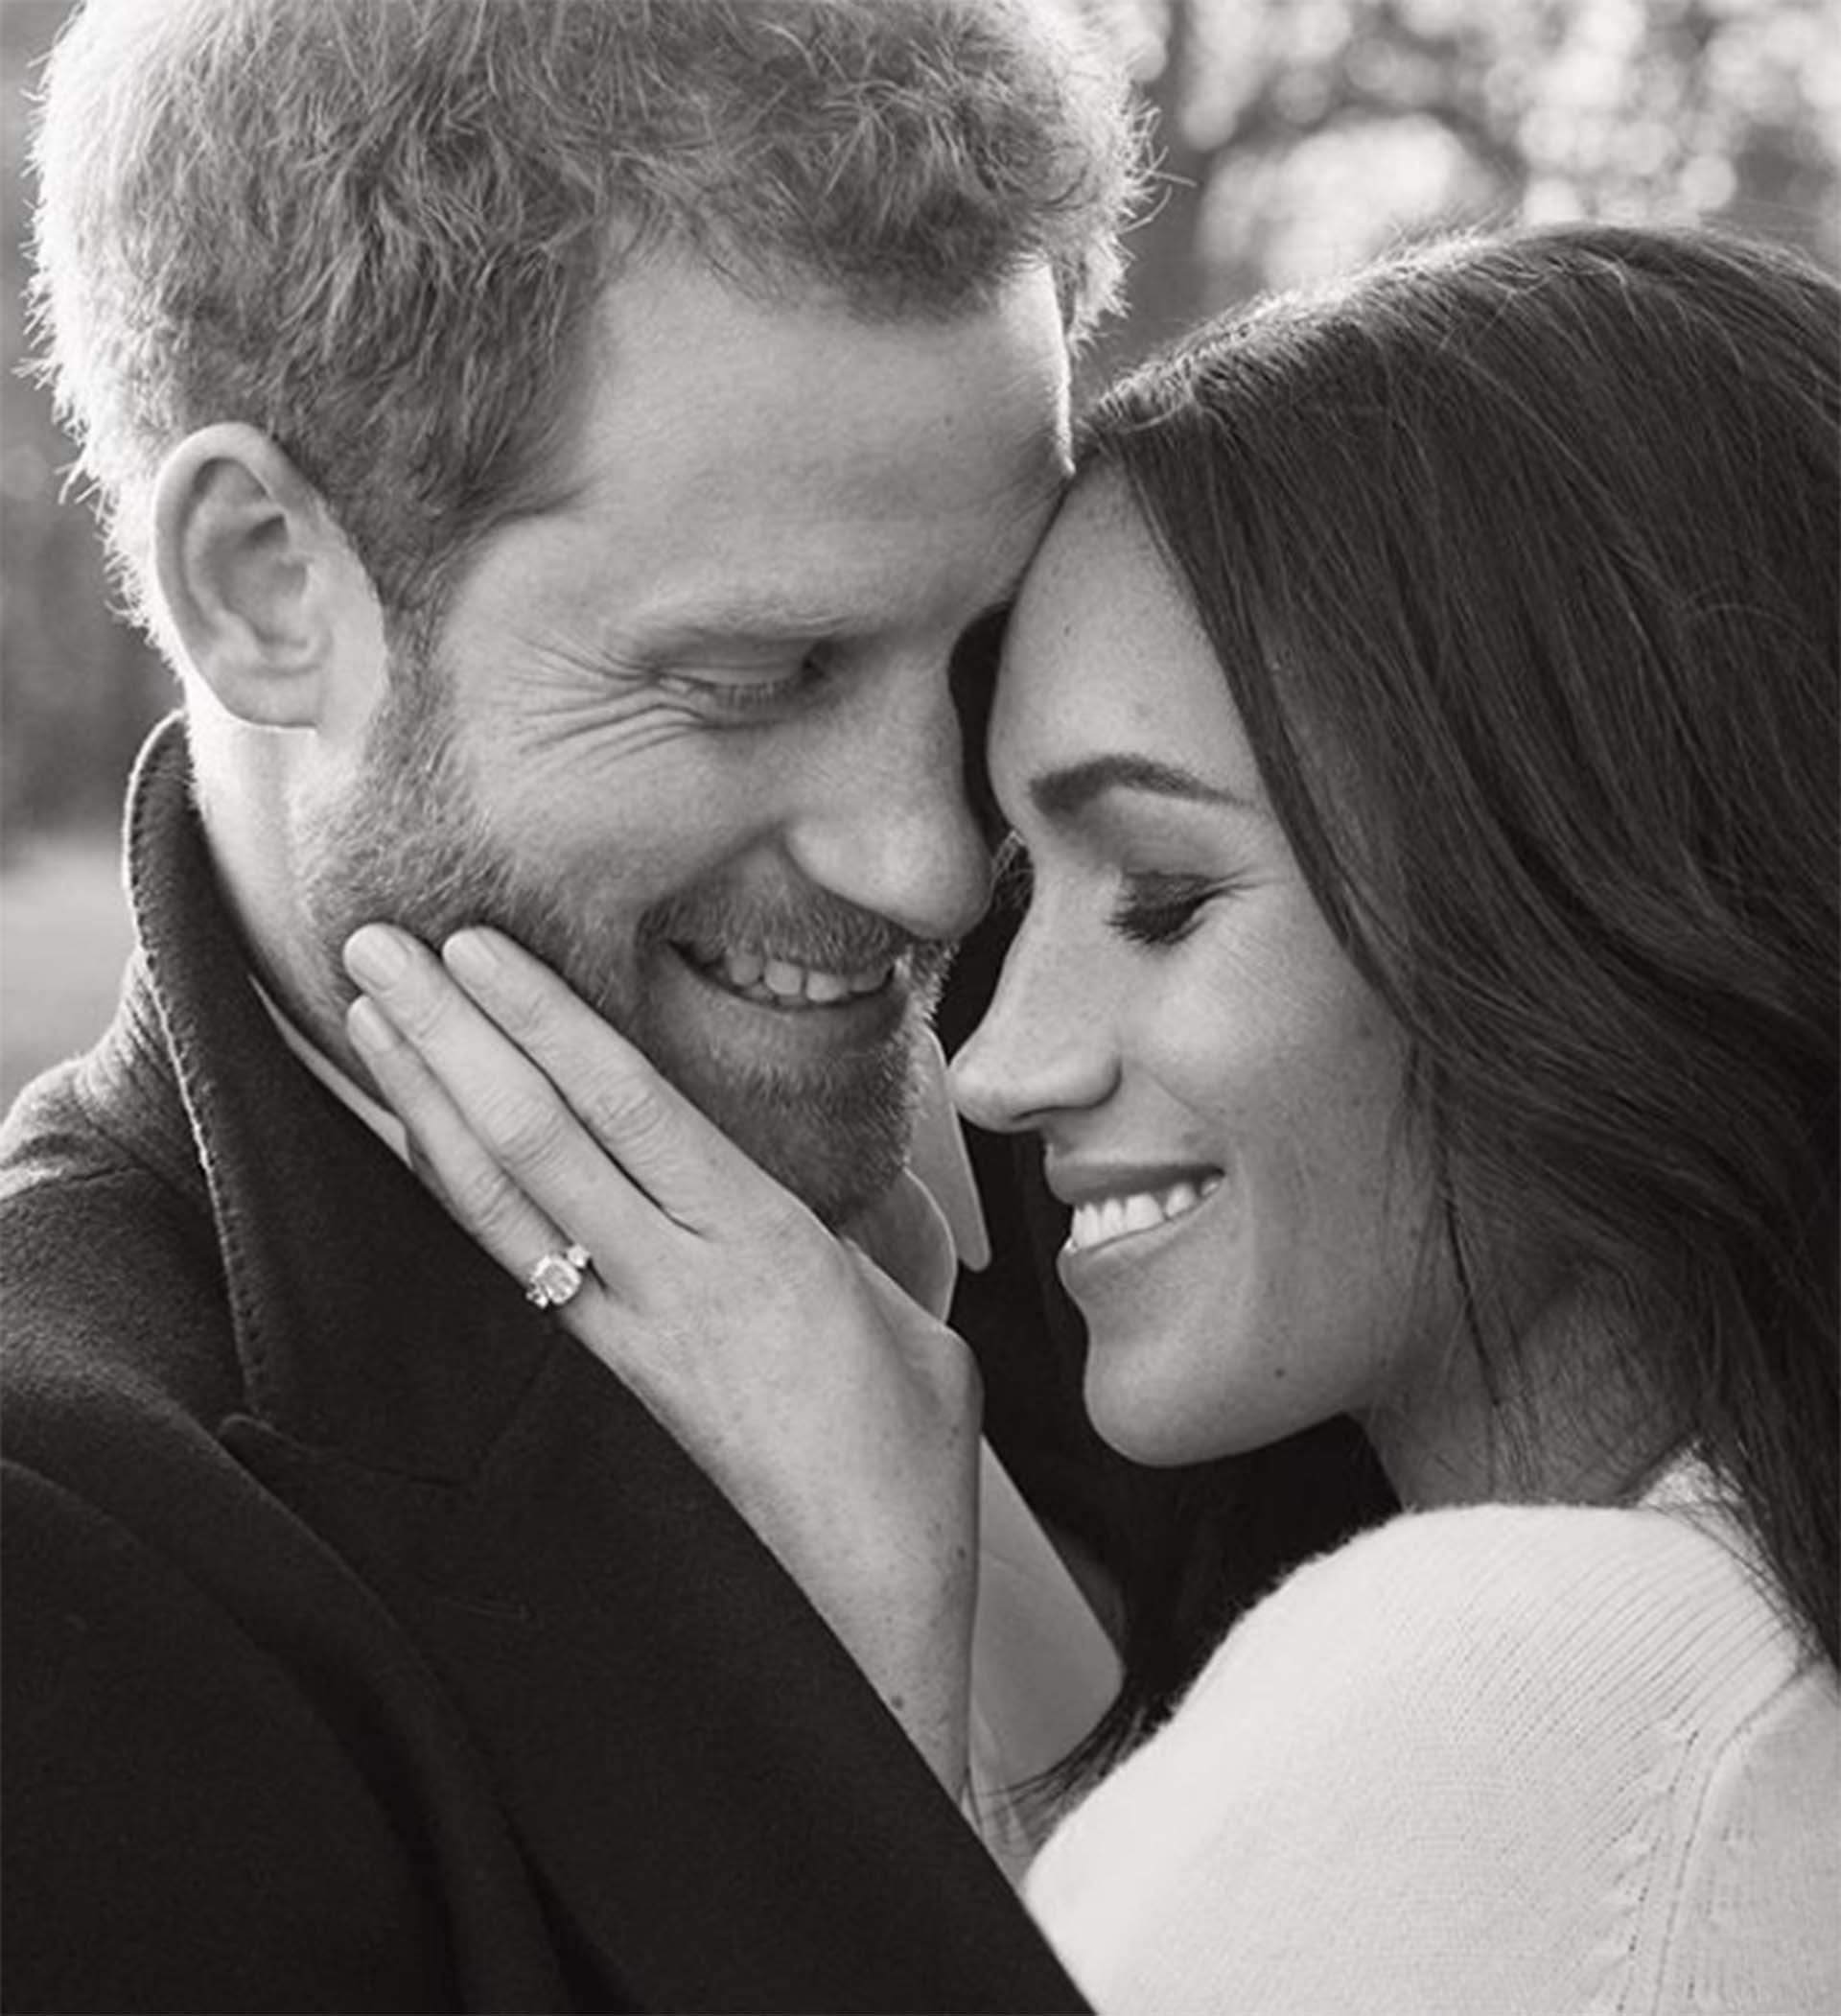 #PARATI-MEGHAN Y HARRY 4